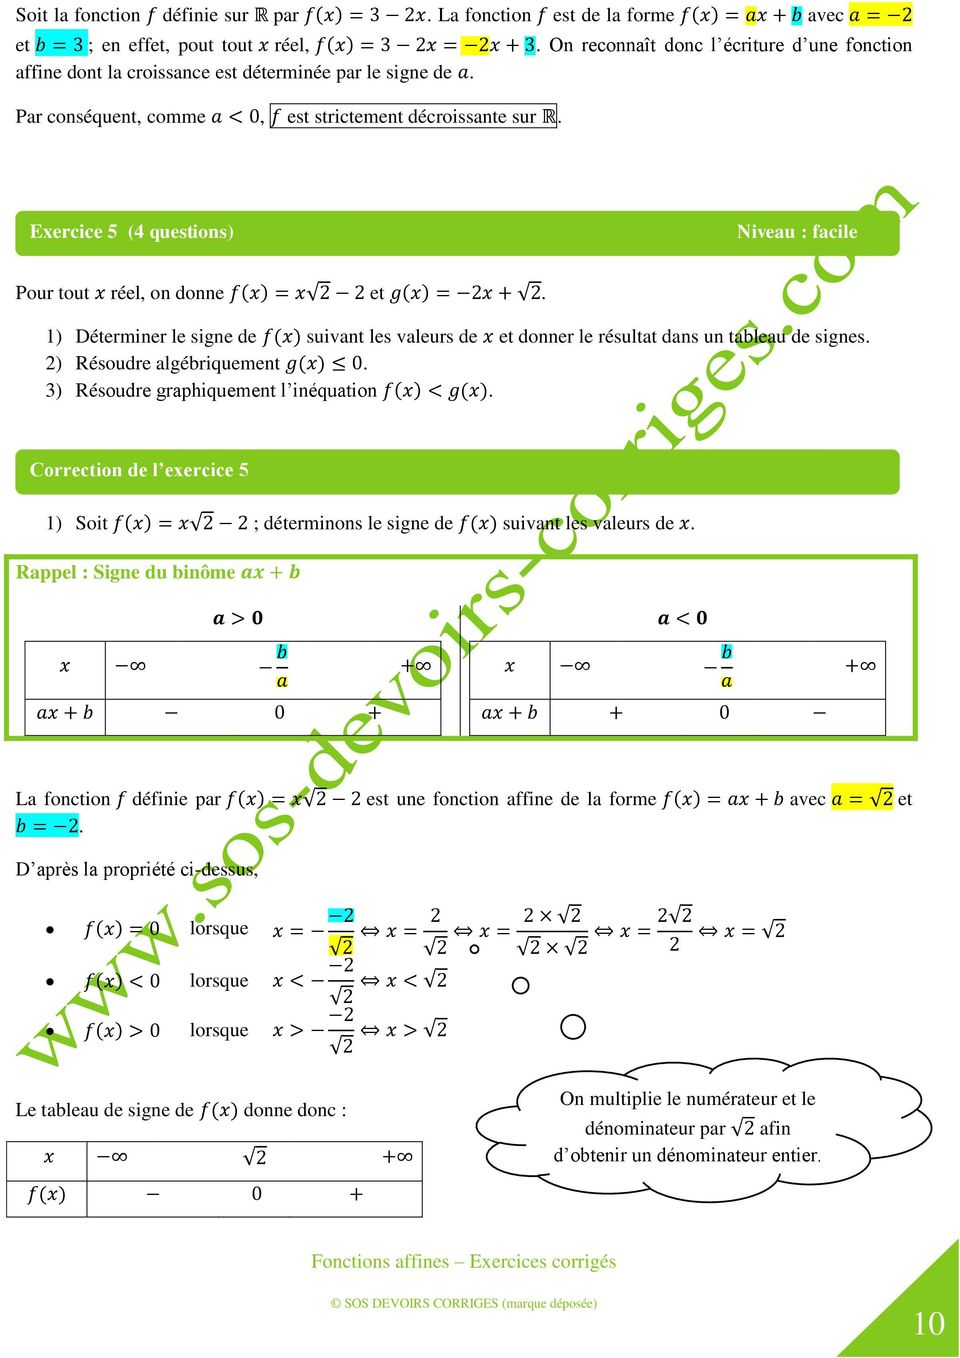 Fonctions Affines Exercices Corriges Pdf